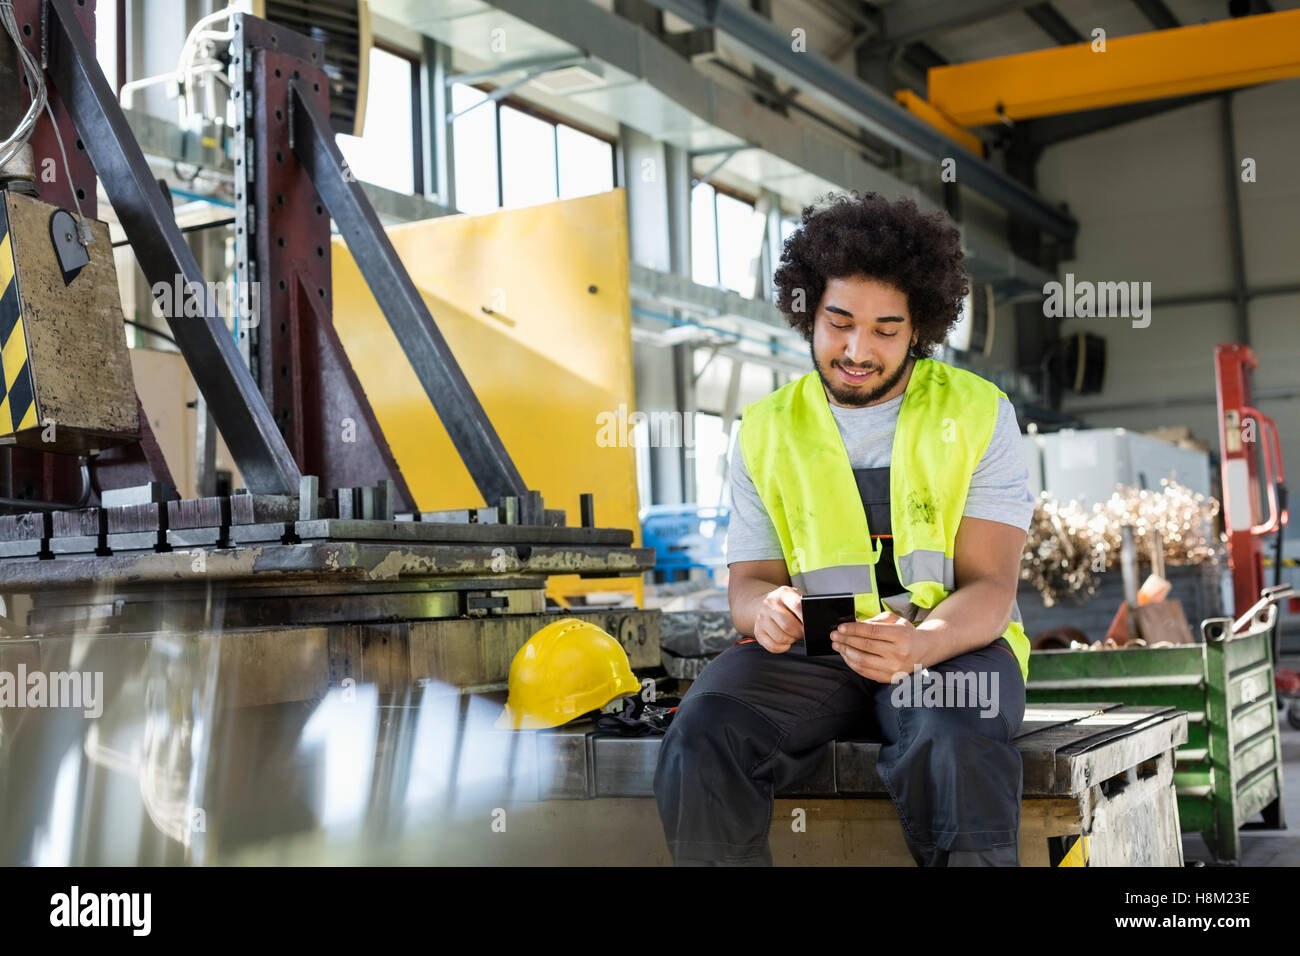 Young manual worker using mobile phone in metal industry Stock Photo